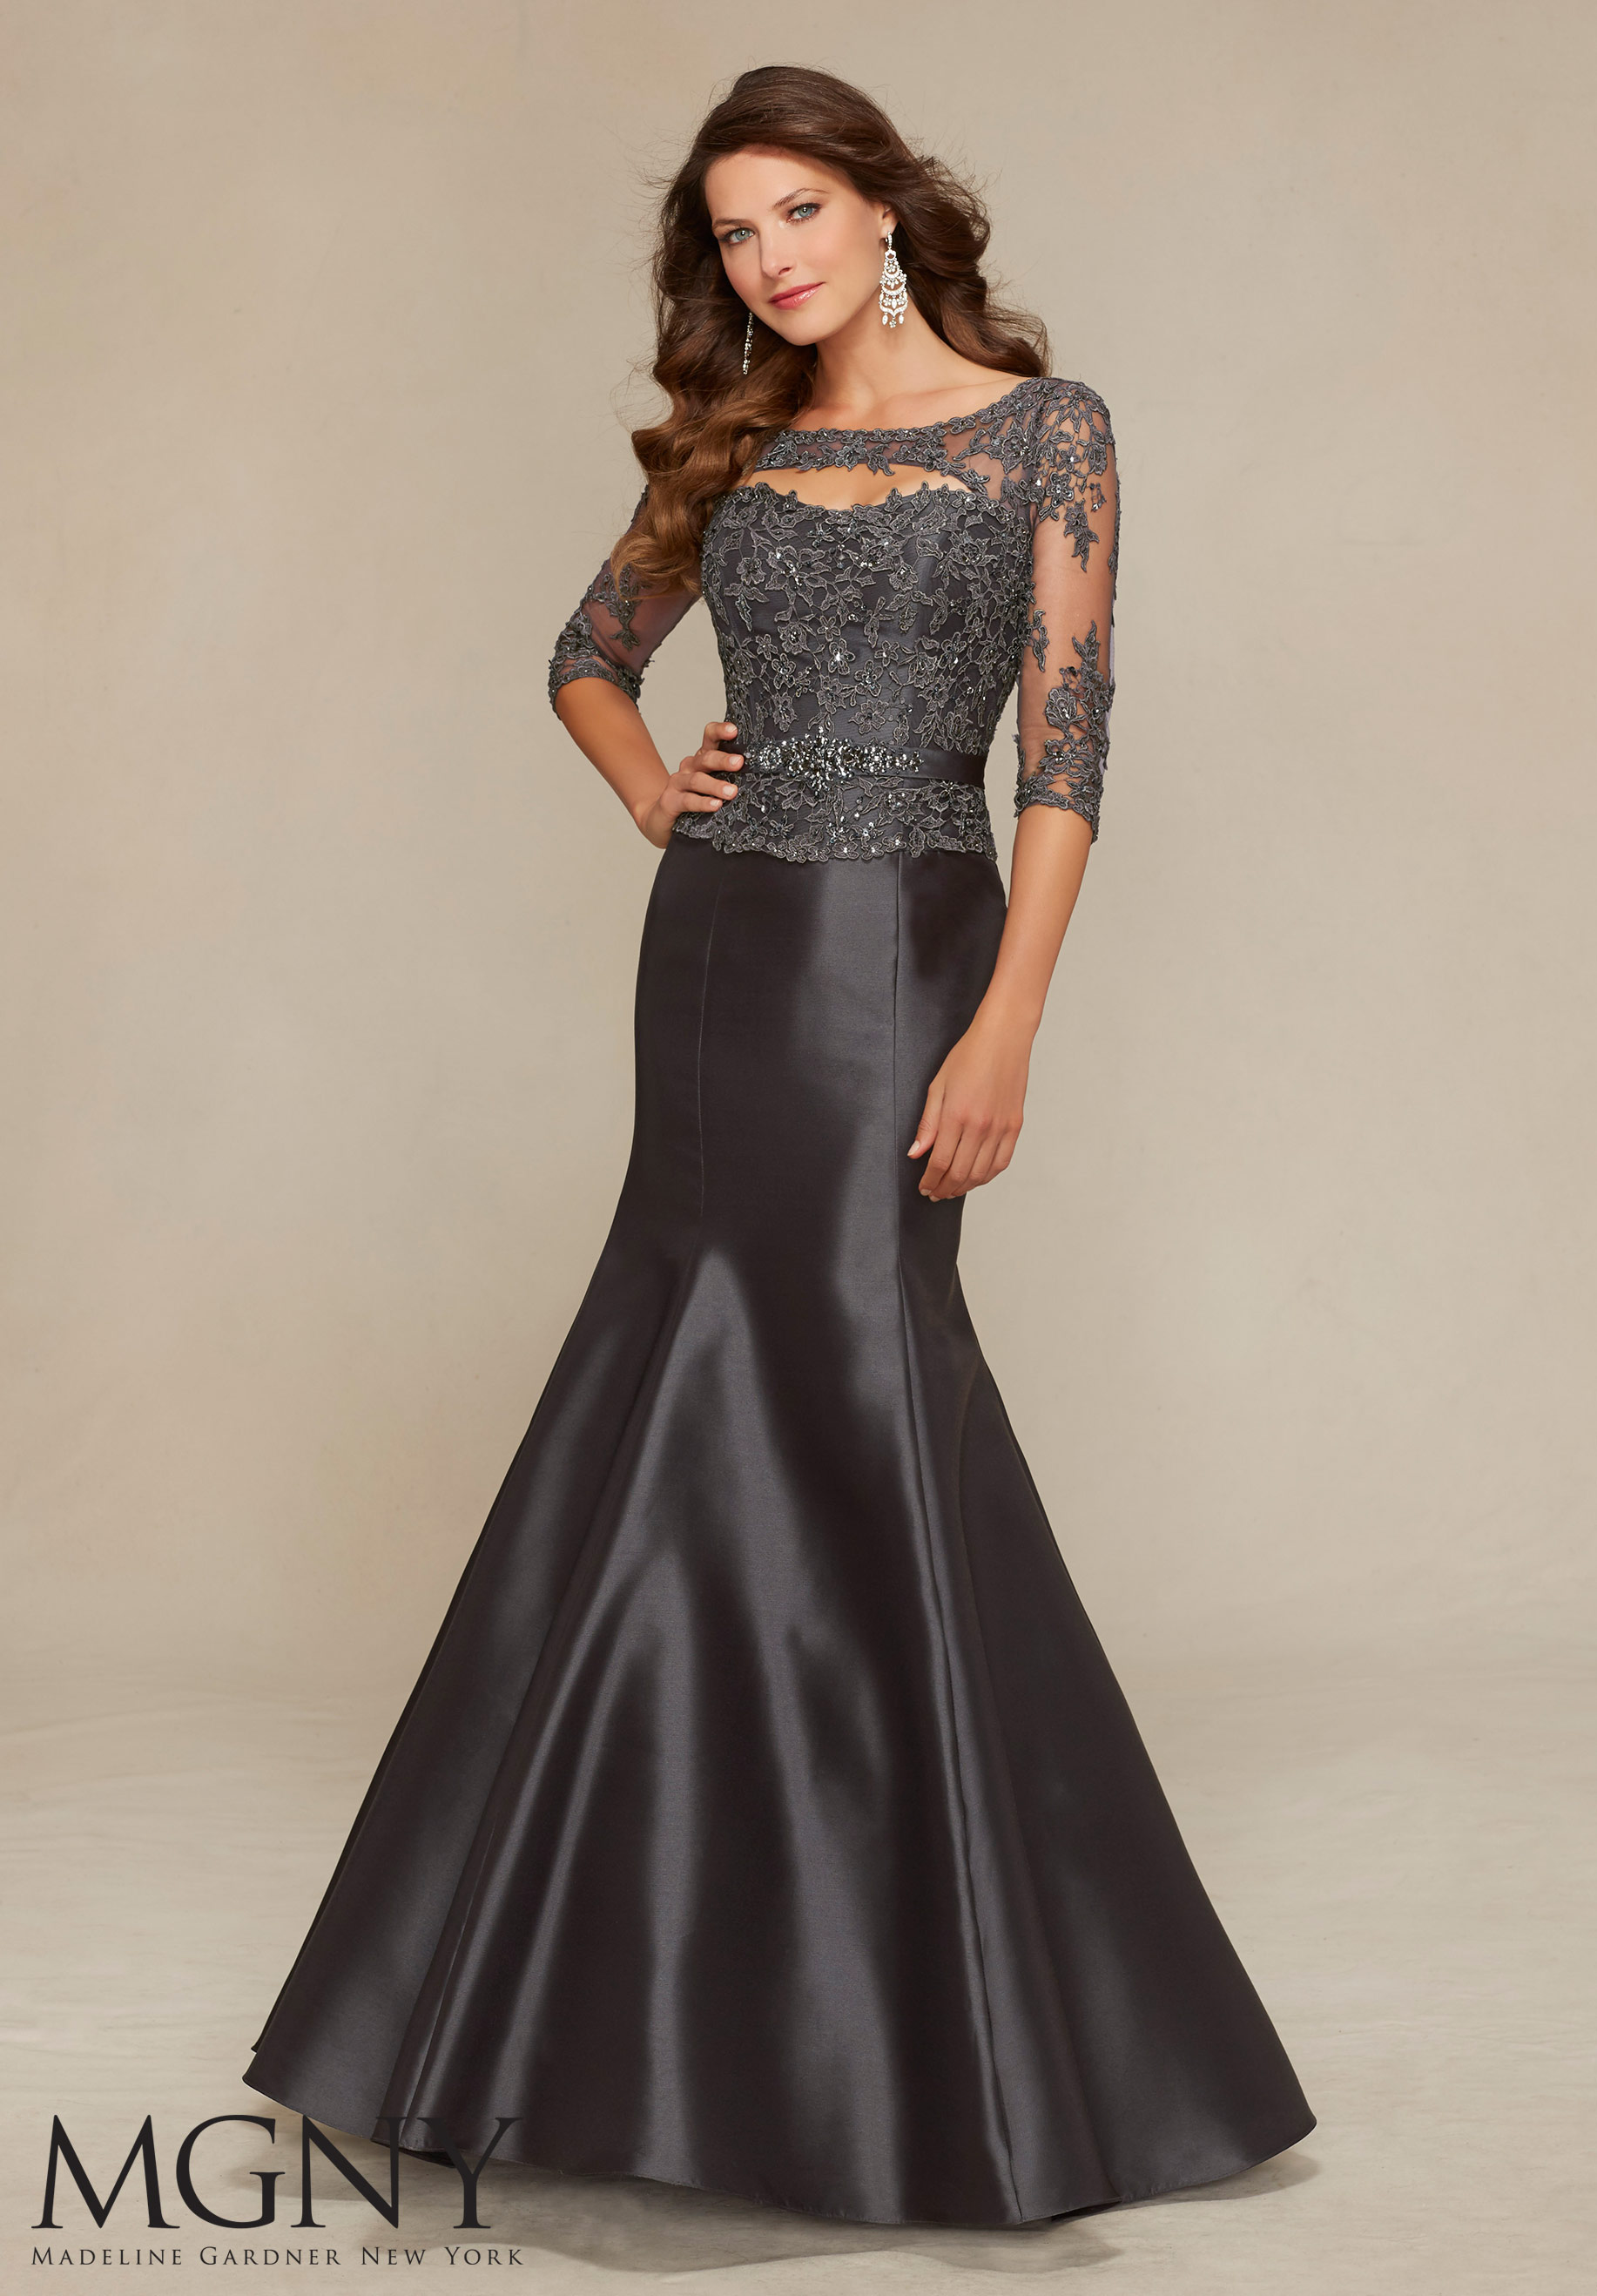 Wedding And Prom Dresses Near Me : Evening gown dresses near me style jeans